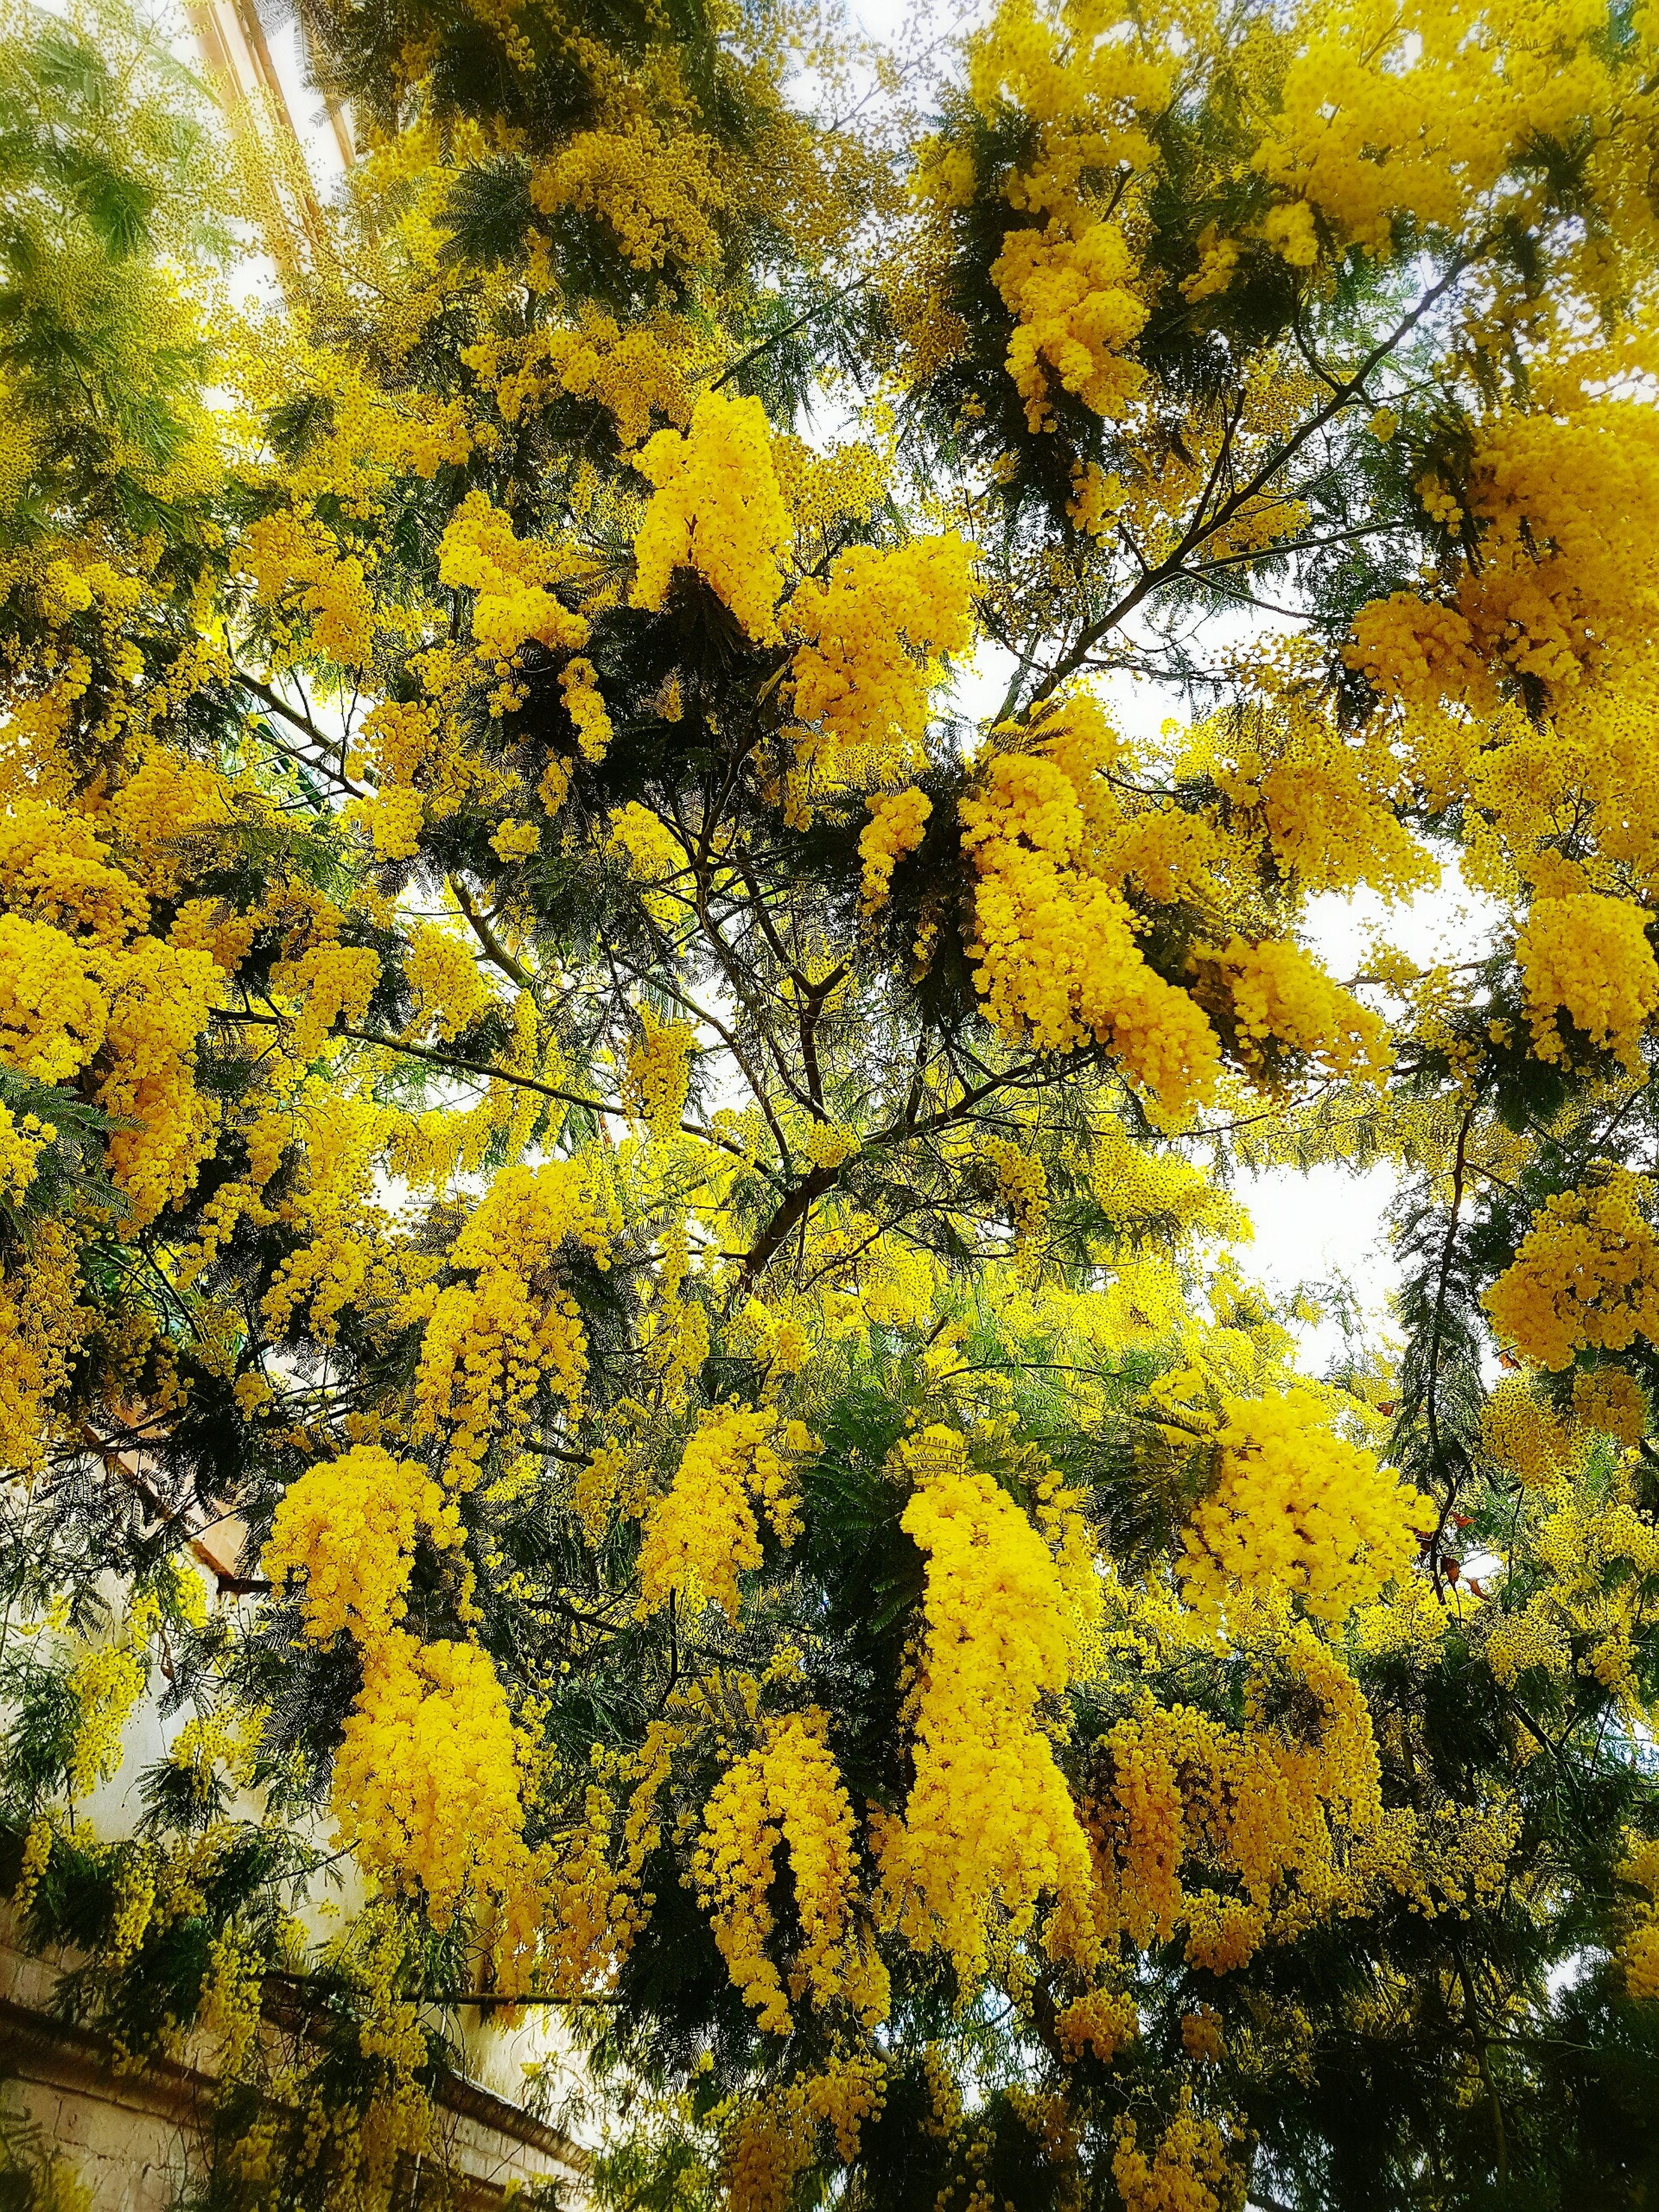 backgrounds, full frame, no people, yellow, nature, close-up, abstract, outdoors, tree, day, beauty in nature, sky